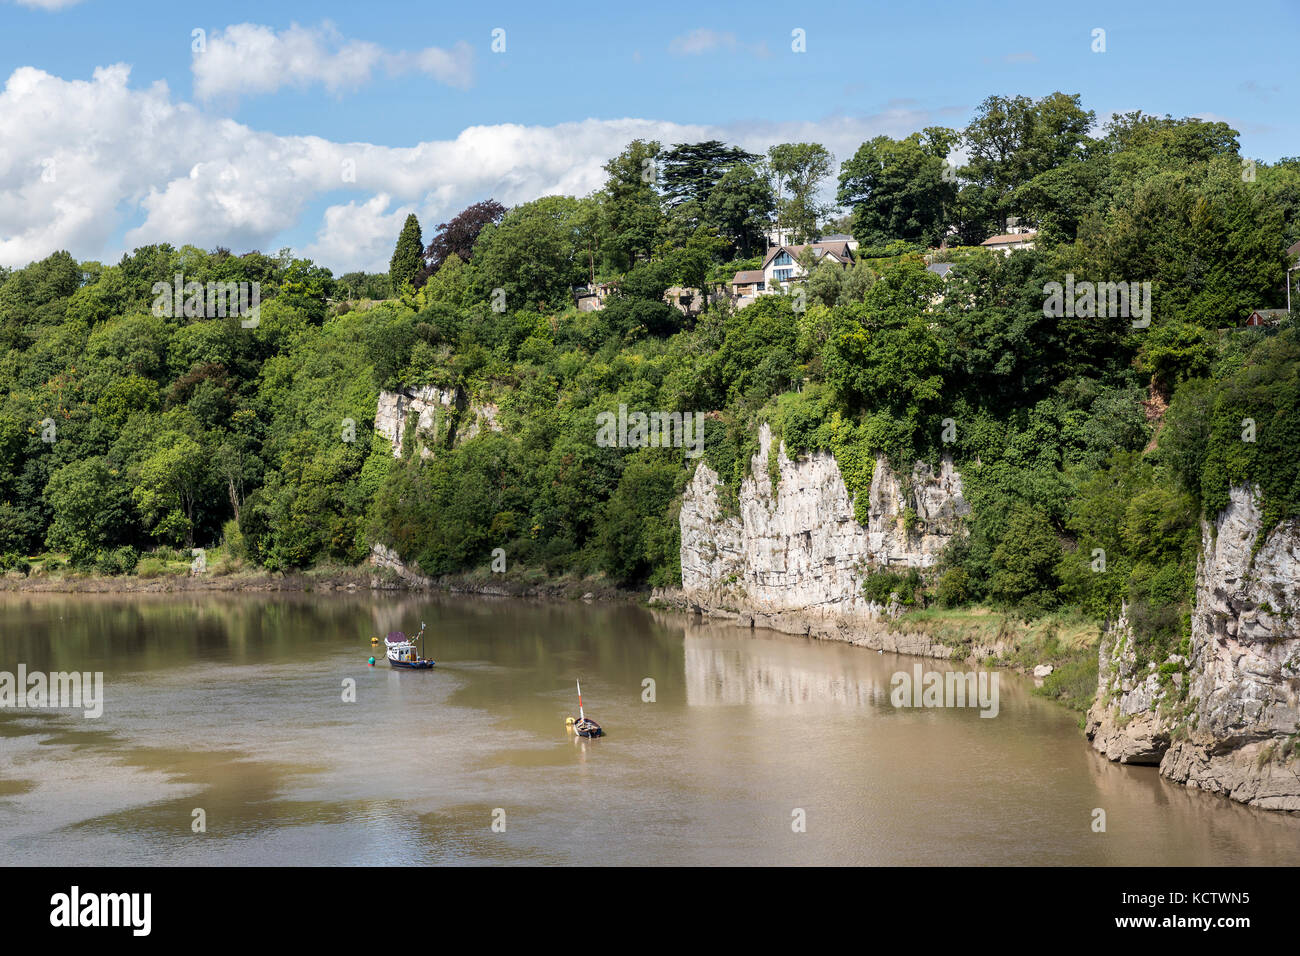 Cliffs with overlooking houses on the River Wye at Chepstow, Wales, UK - Stock Image